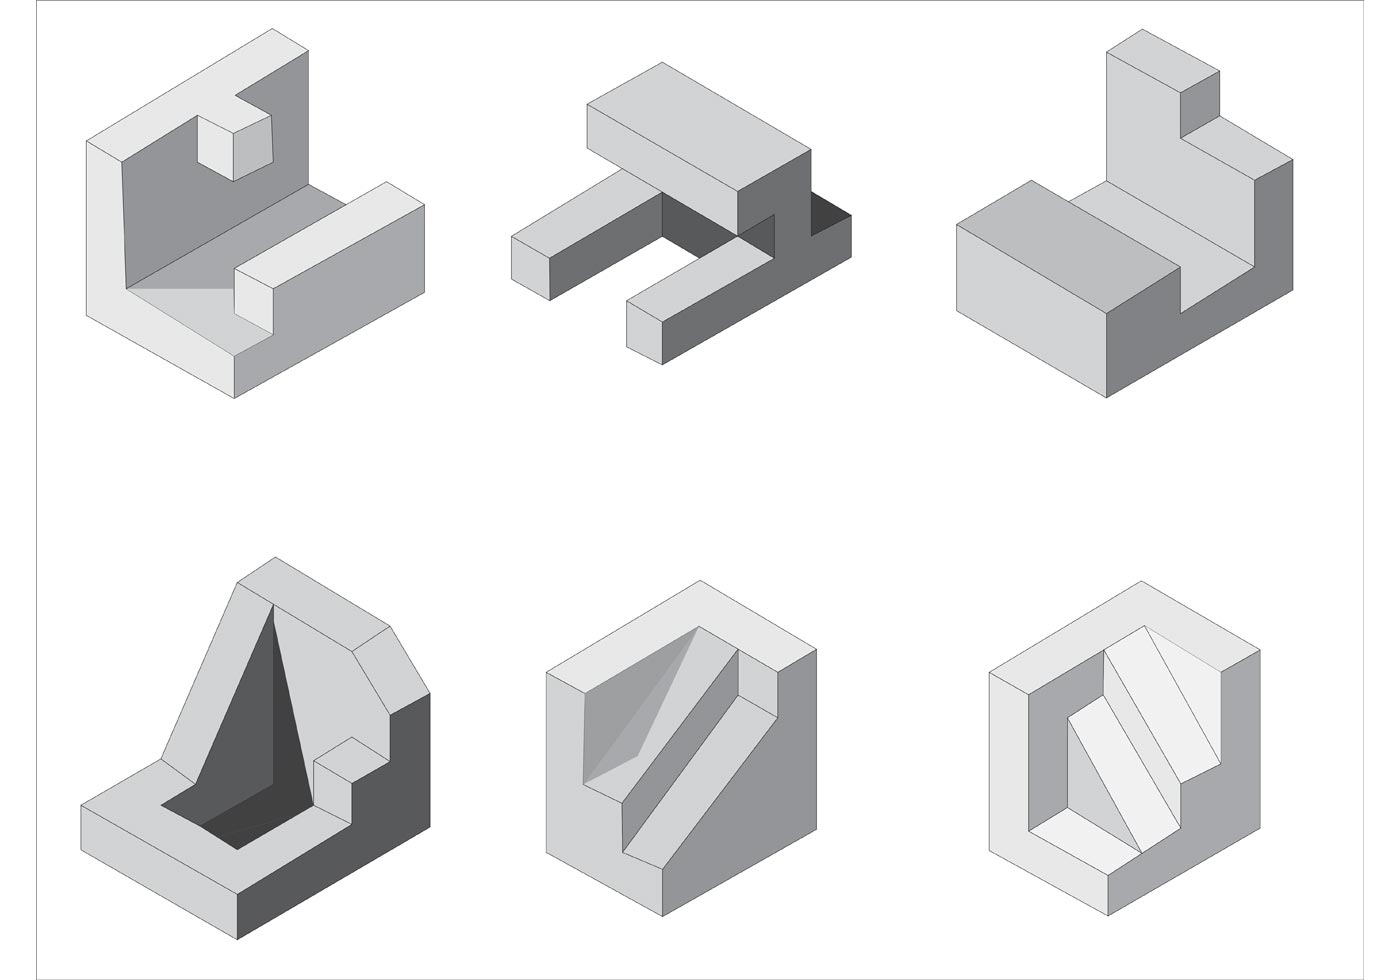 Free Isometric Vector Shapes - Download Free Vector Art, Stock Graphics & Images